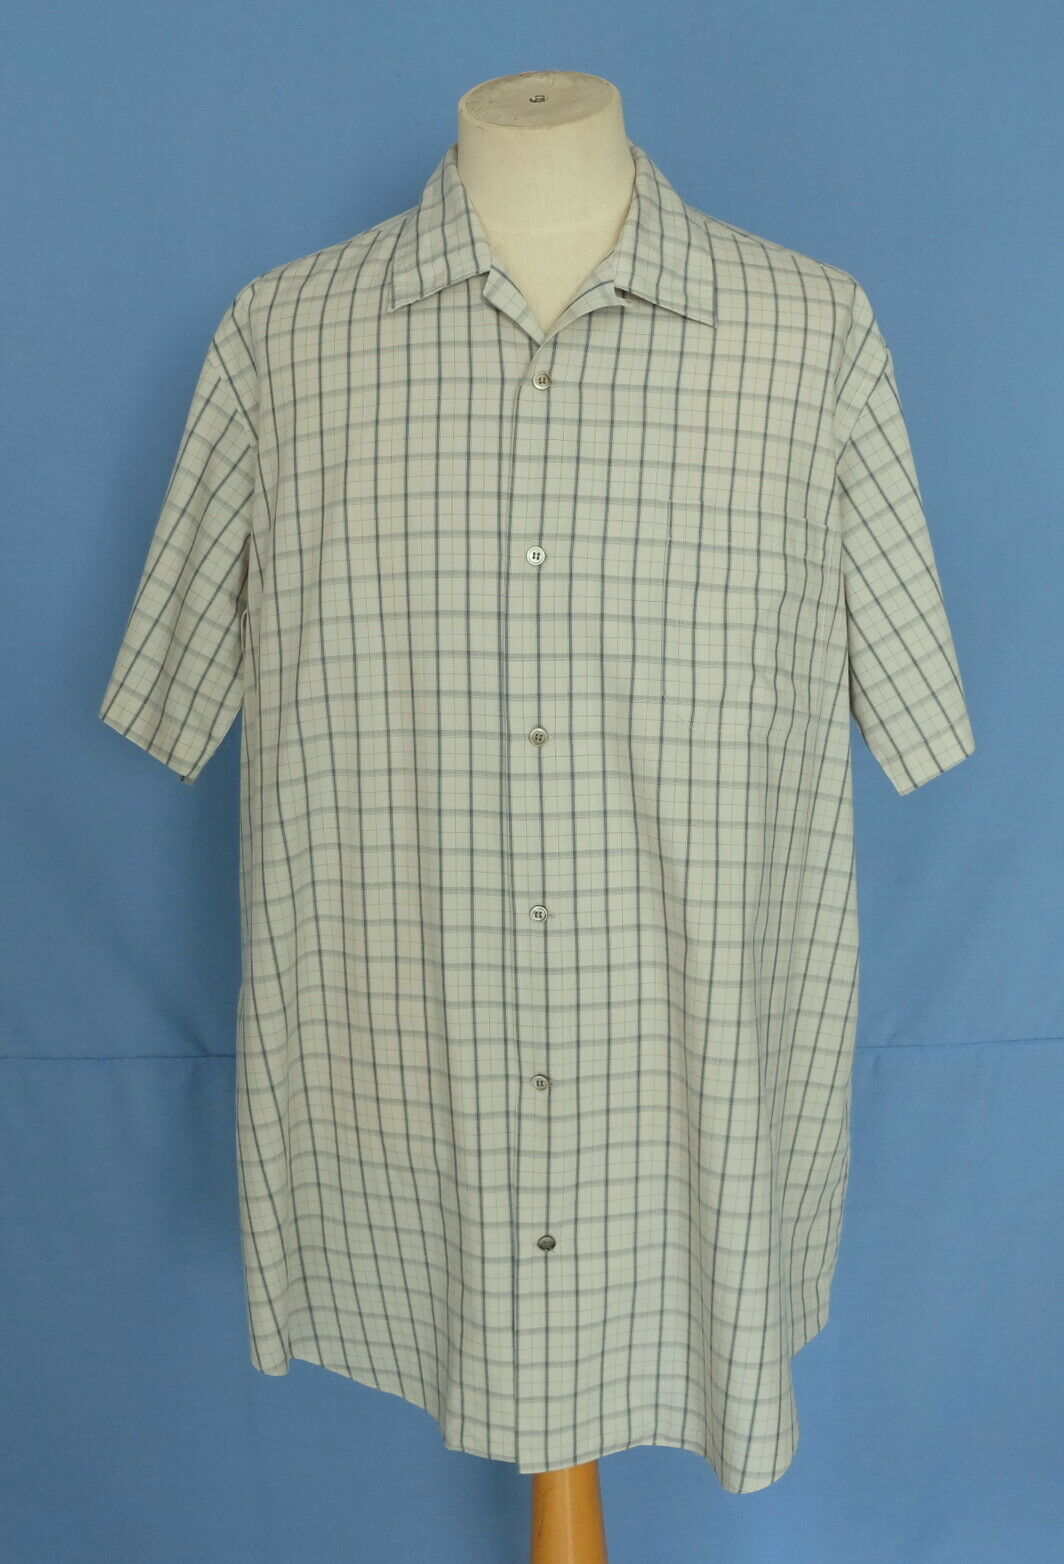 Yohji Yamamoto Y's for men Plaid Cotton Loop Collar Men Shirt Short Sleeves XL